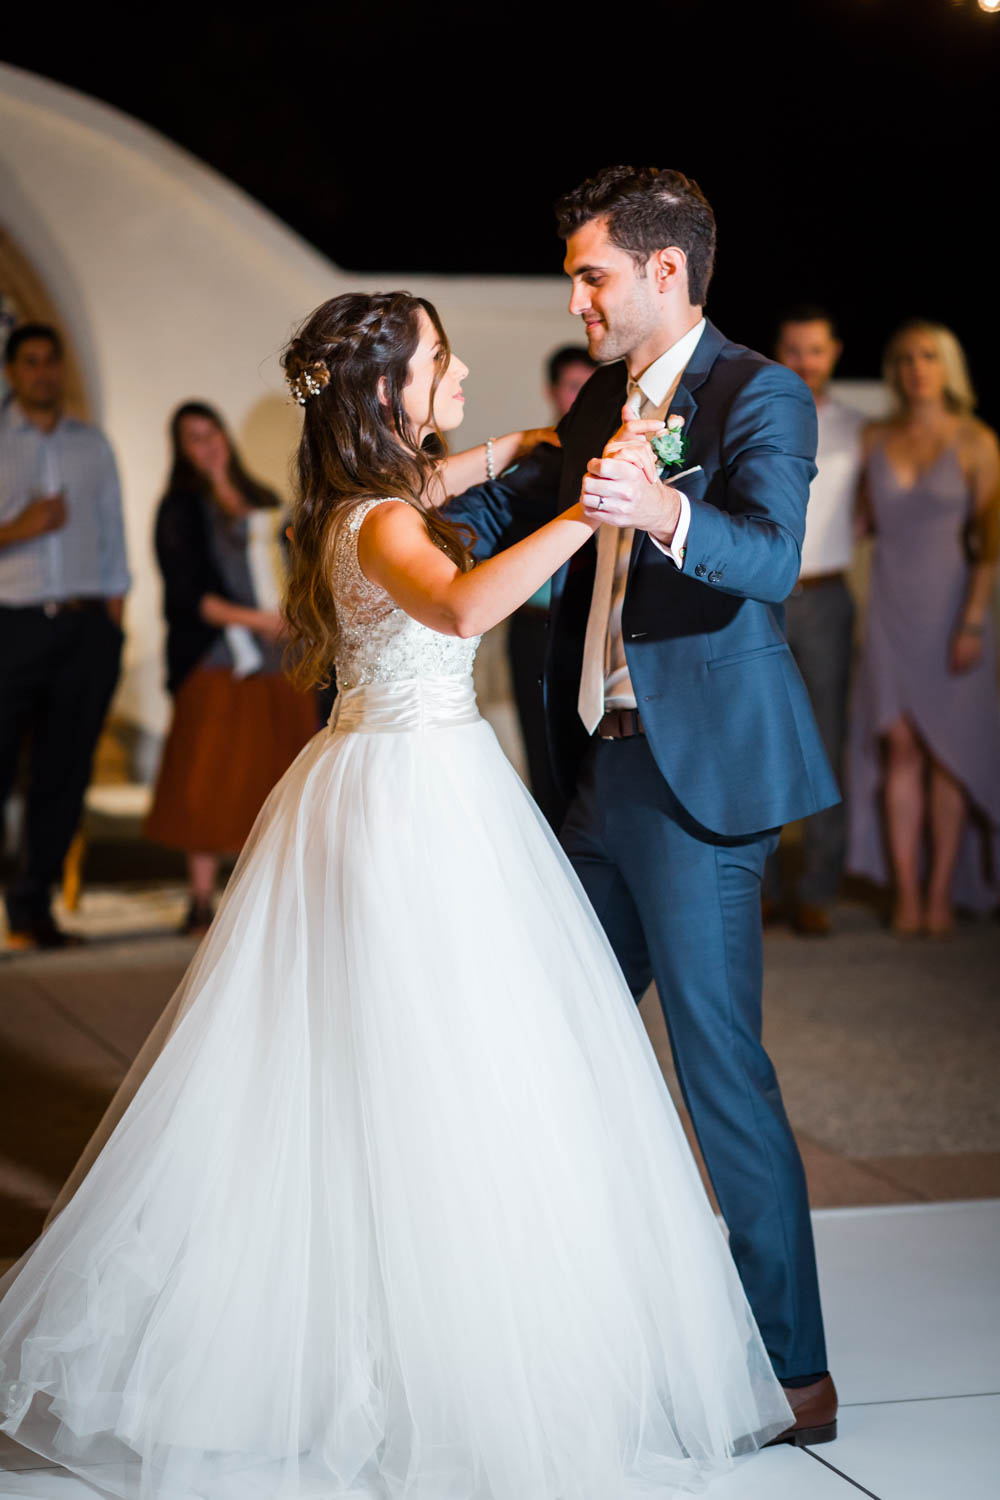 Wedding reception first dance at the Omni Rancho Las Palmas in Rancho Mirage Palm Springs, Cavin Elizabeth Photography